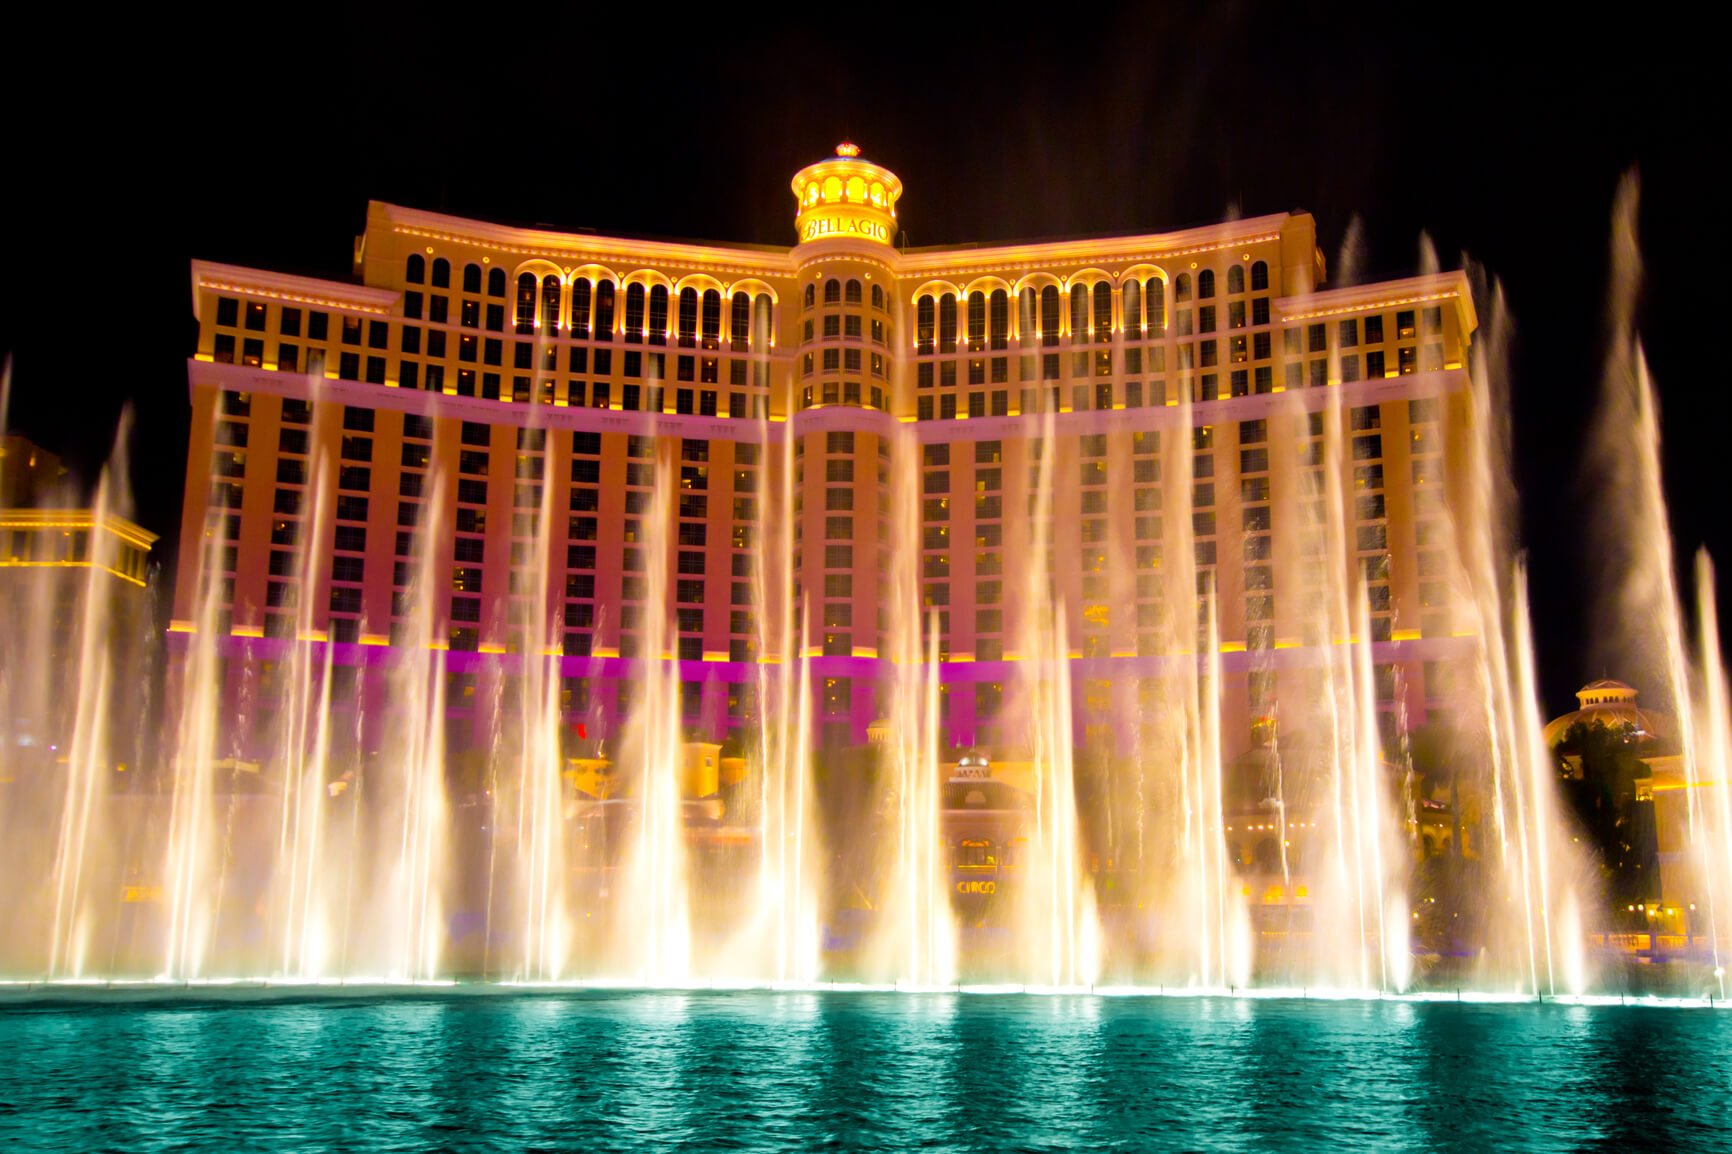 Non-stop from Atlanta to Las Vegas (& vice versa) for only $156 roundtrip (Sep dates)